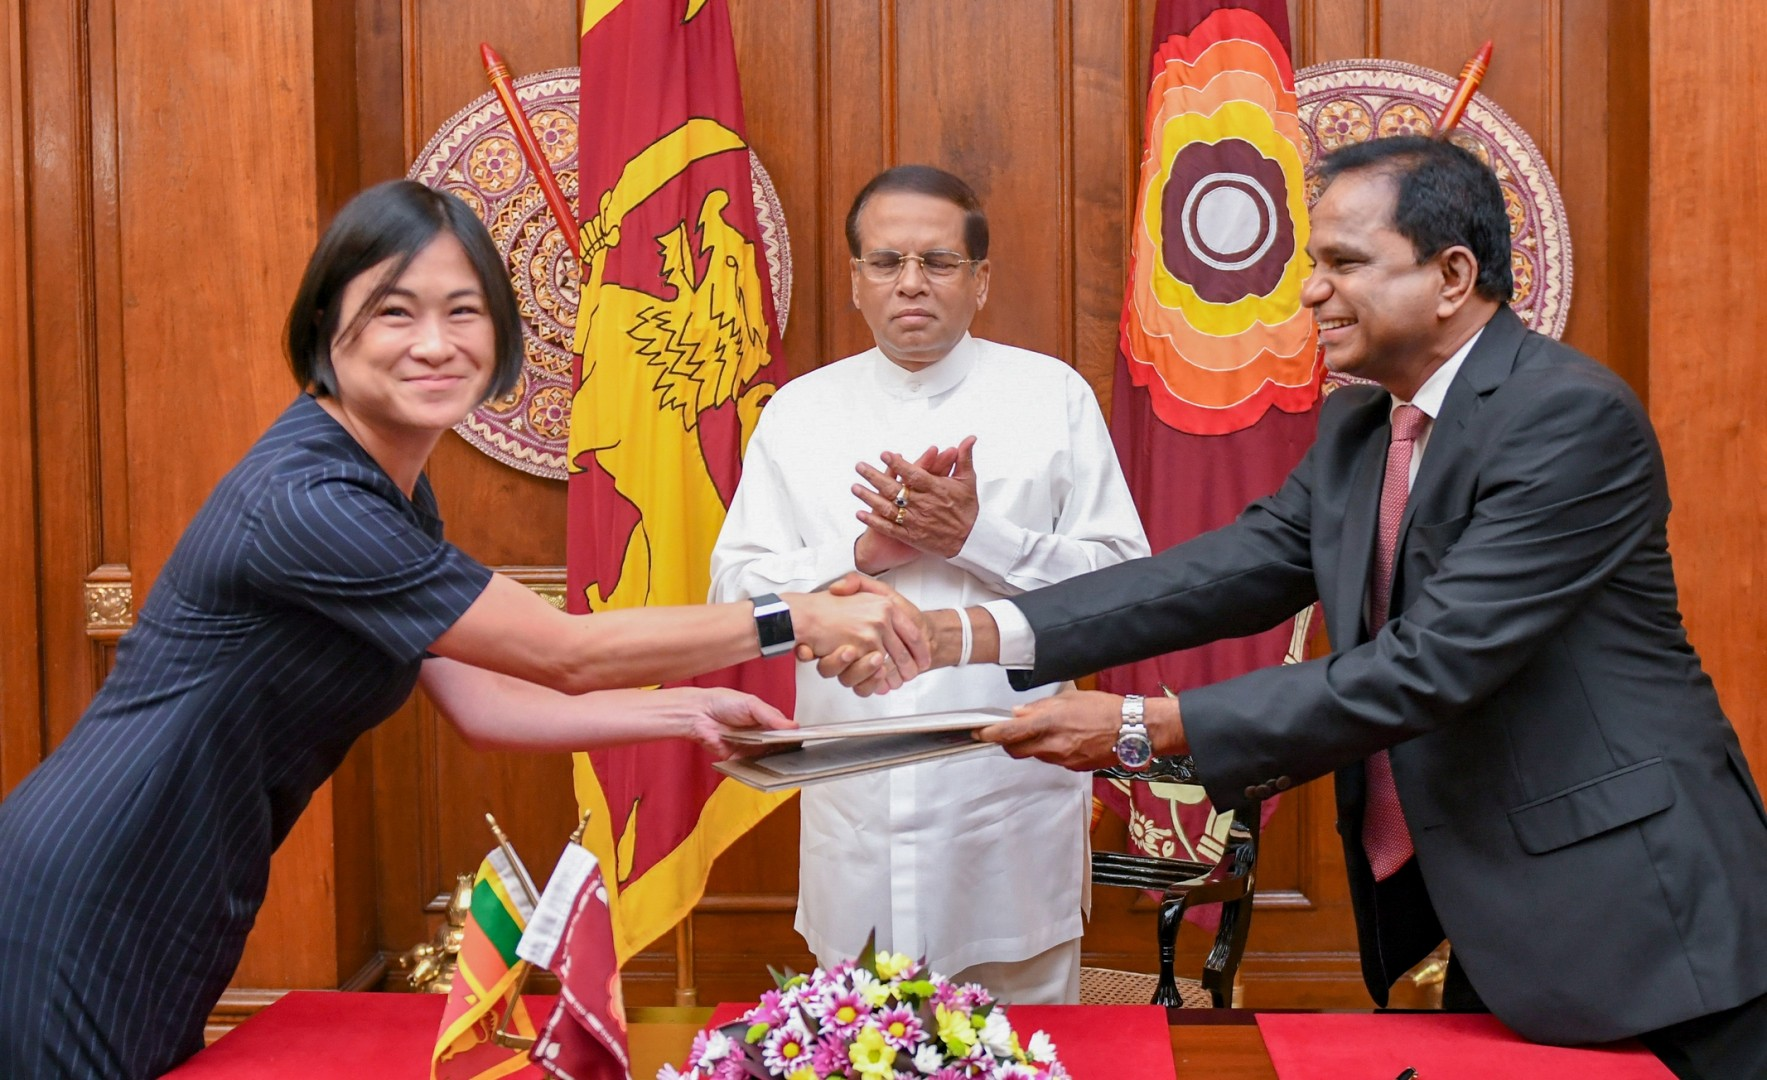 The MoU paves the way for Sri Lanka to build a 100MW floating farm with Canada's help (Credit: Sri Lankan Ministry of Power and Energy)